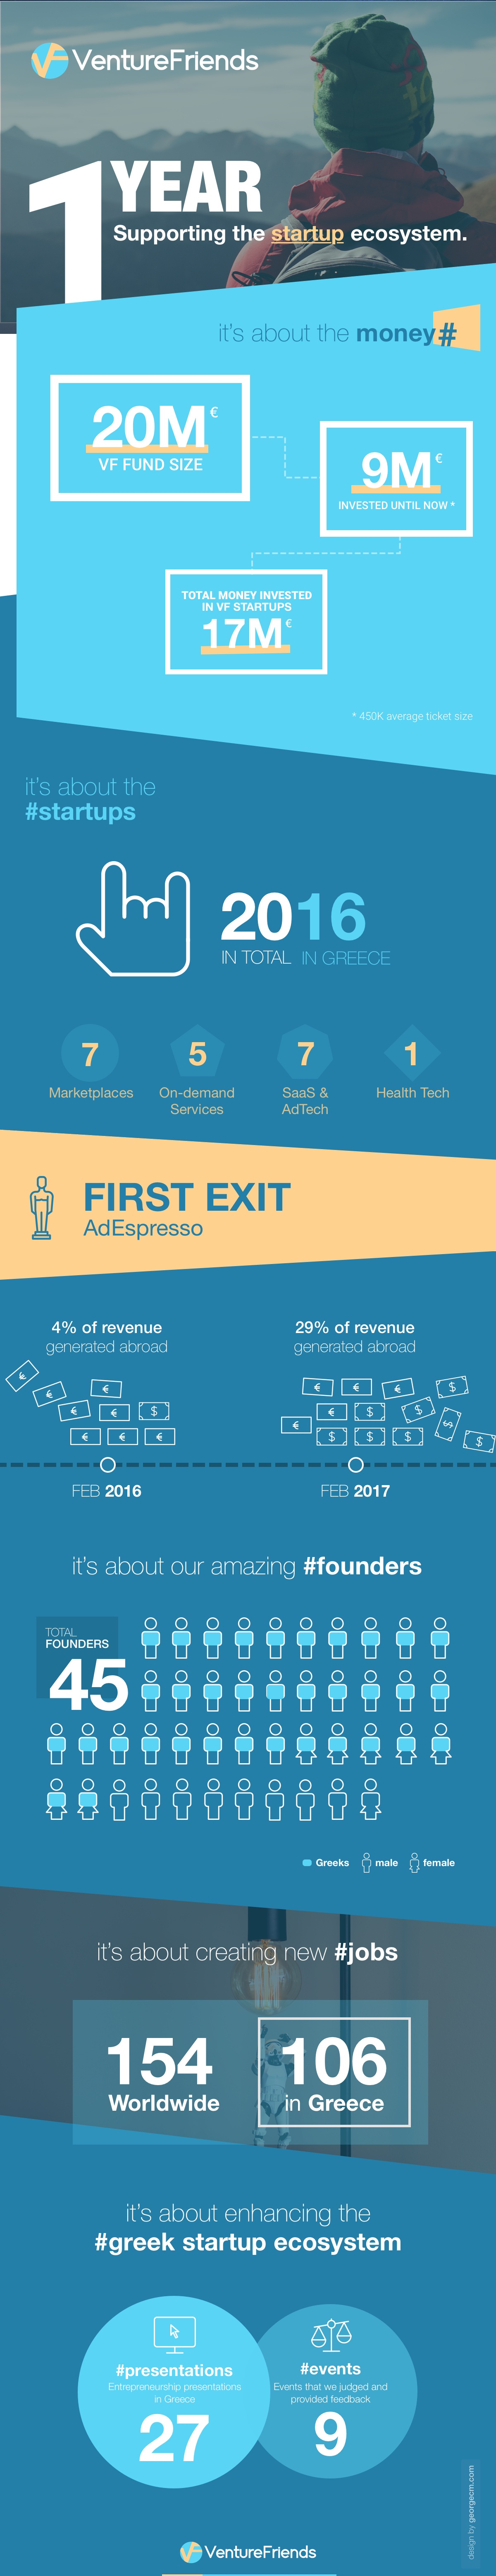 VF Infographic